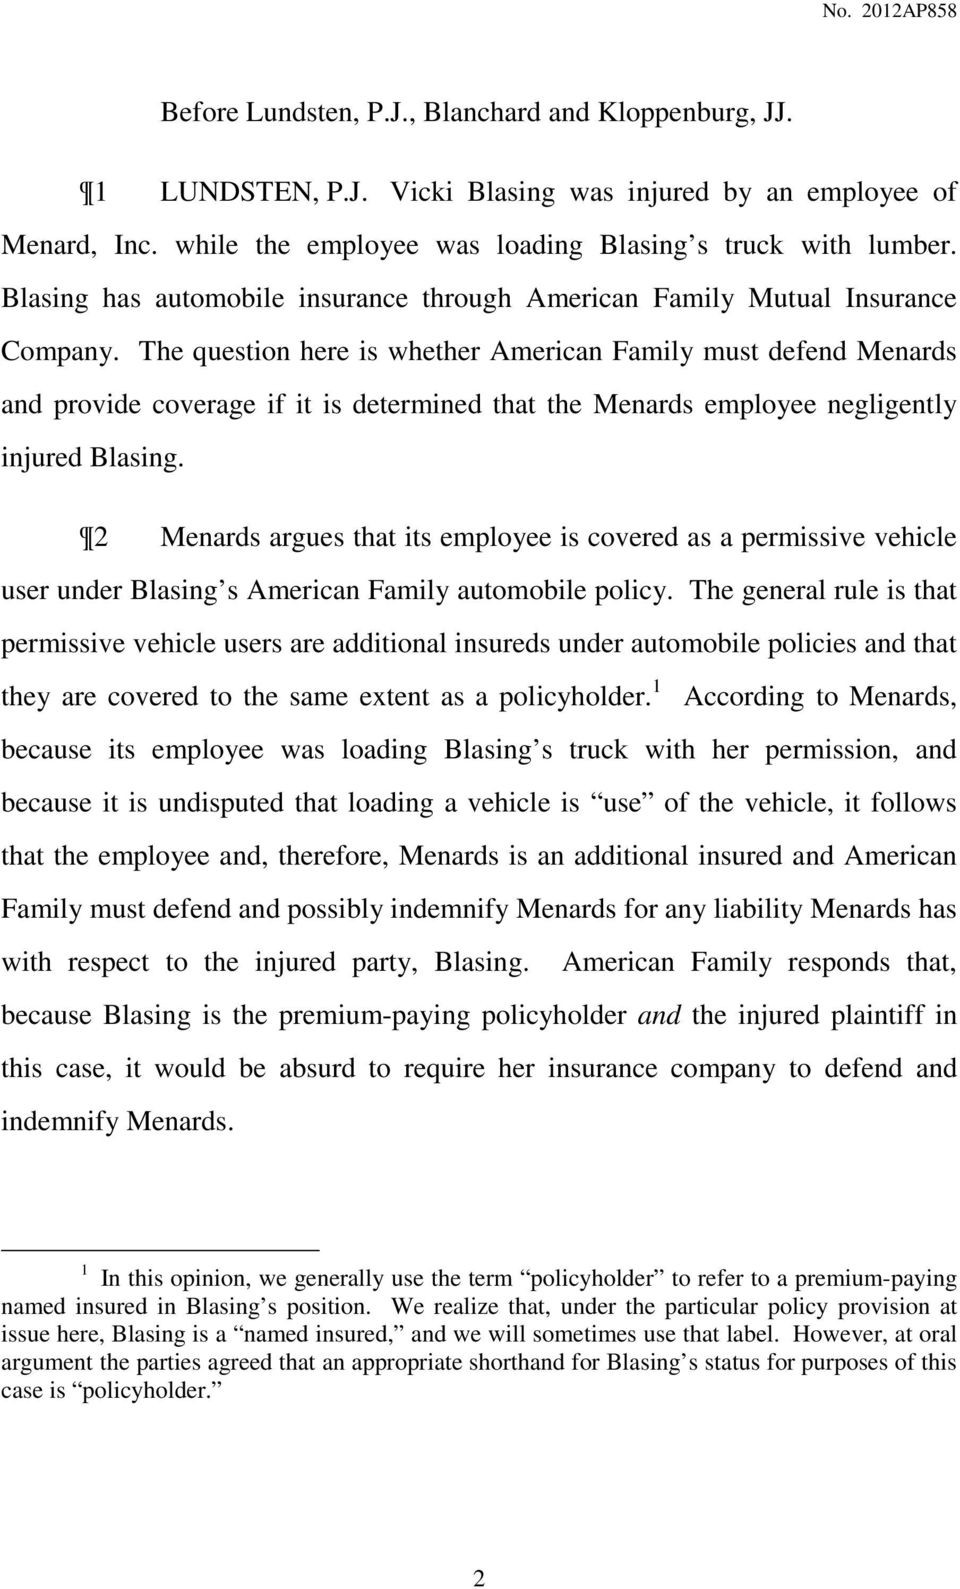 The question here is whether American Family must defend Menards and provide coverage if it is determined that the Menards employee negligently injured Blasing.